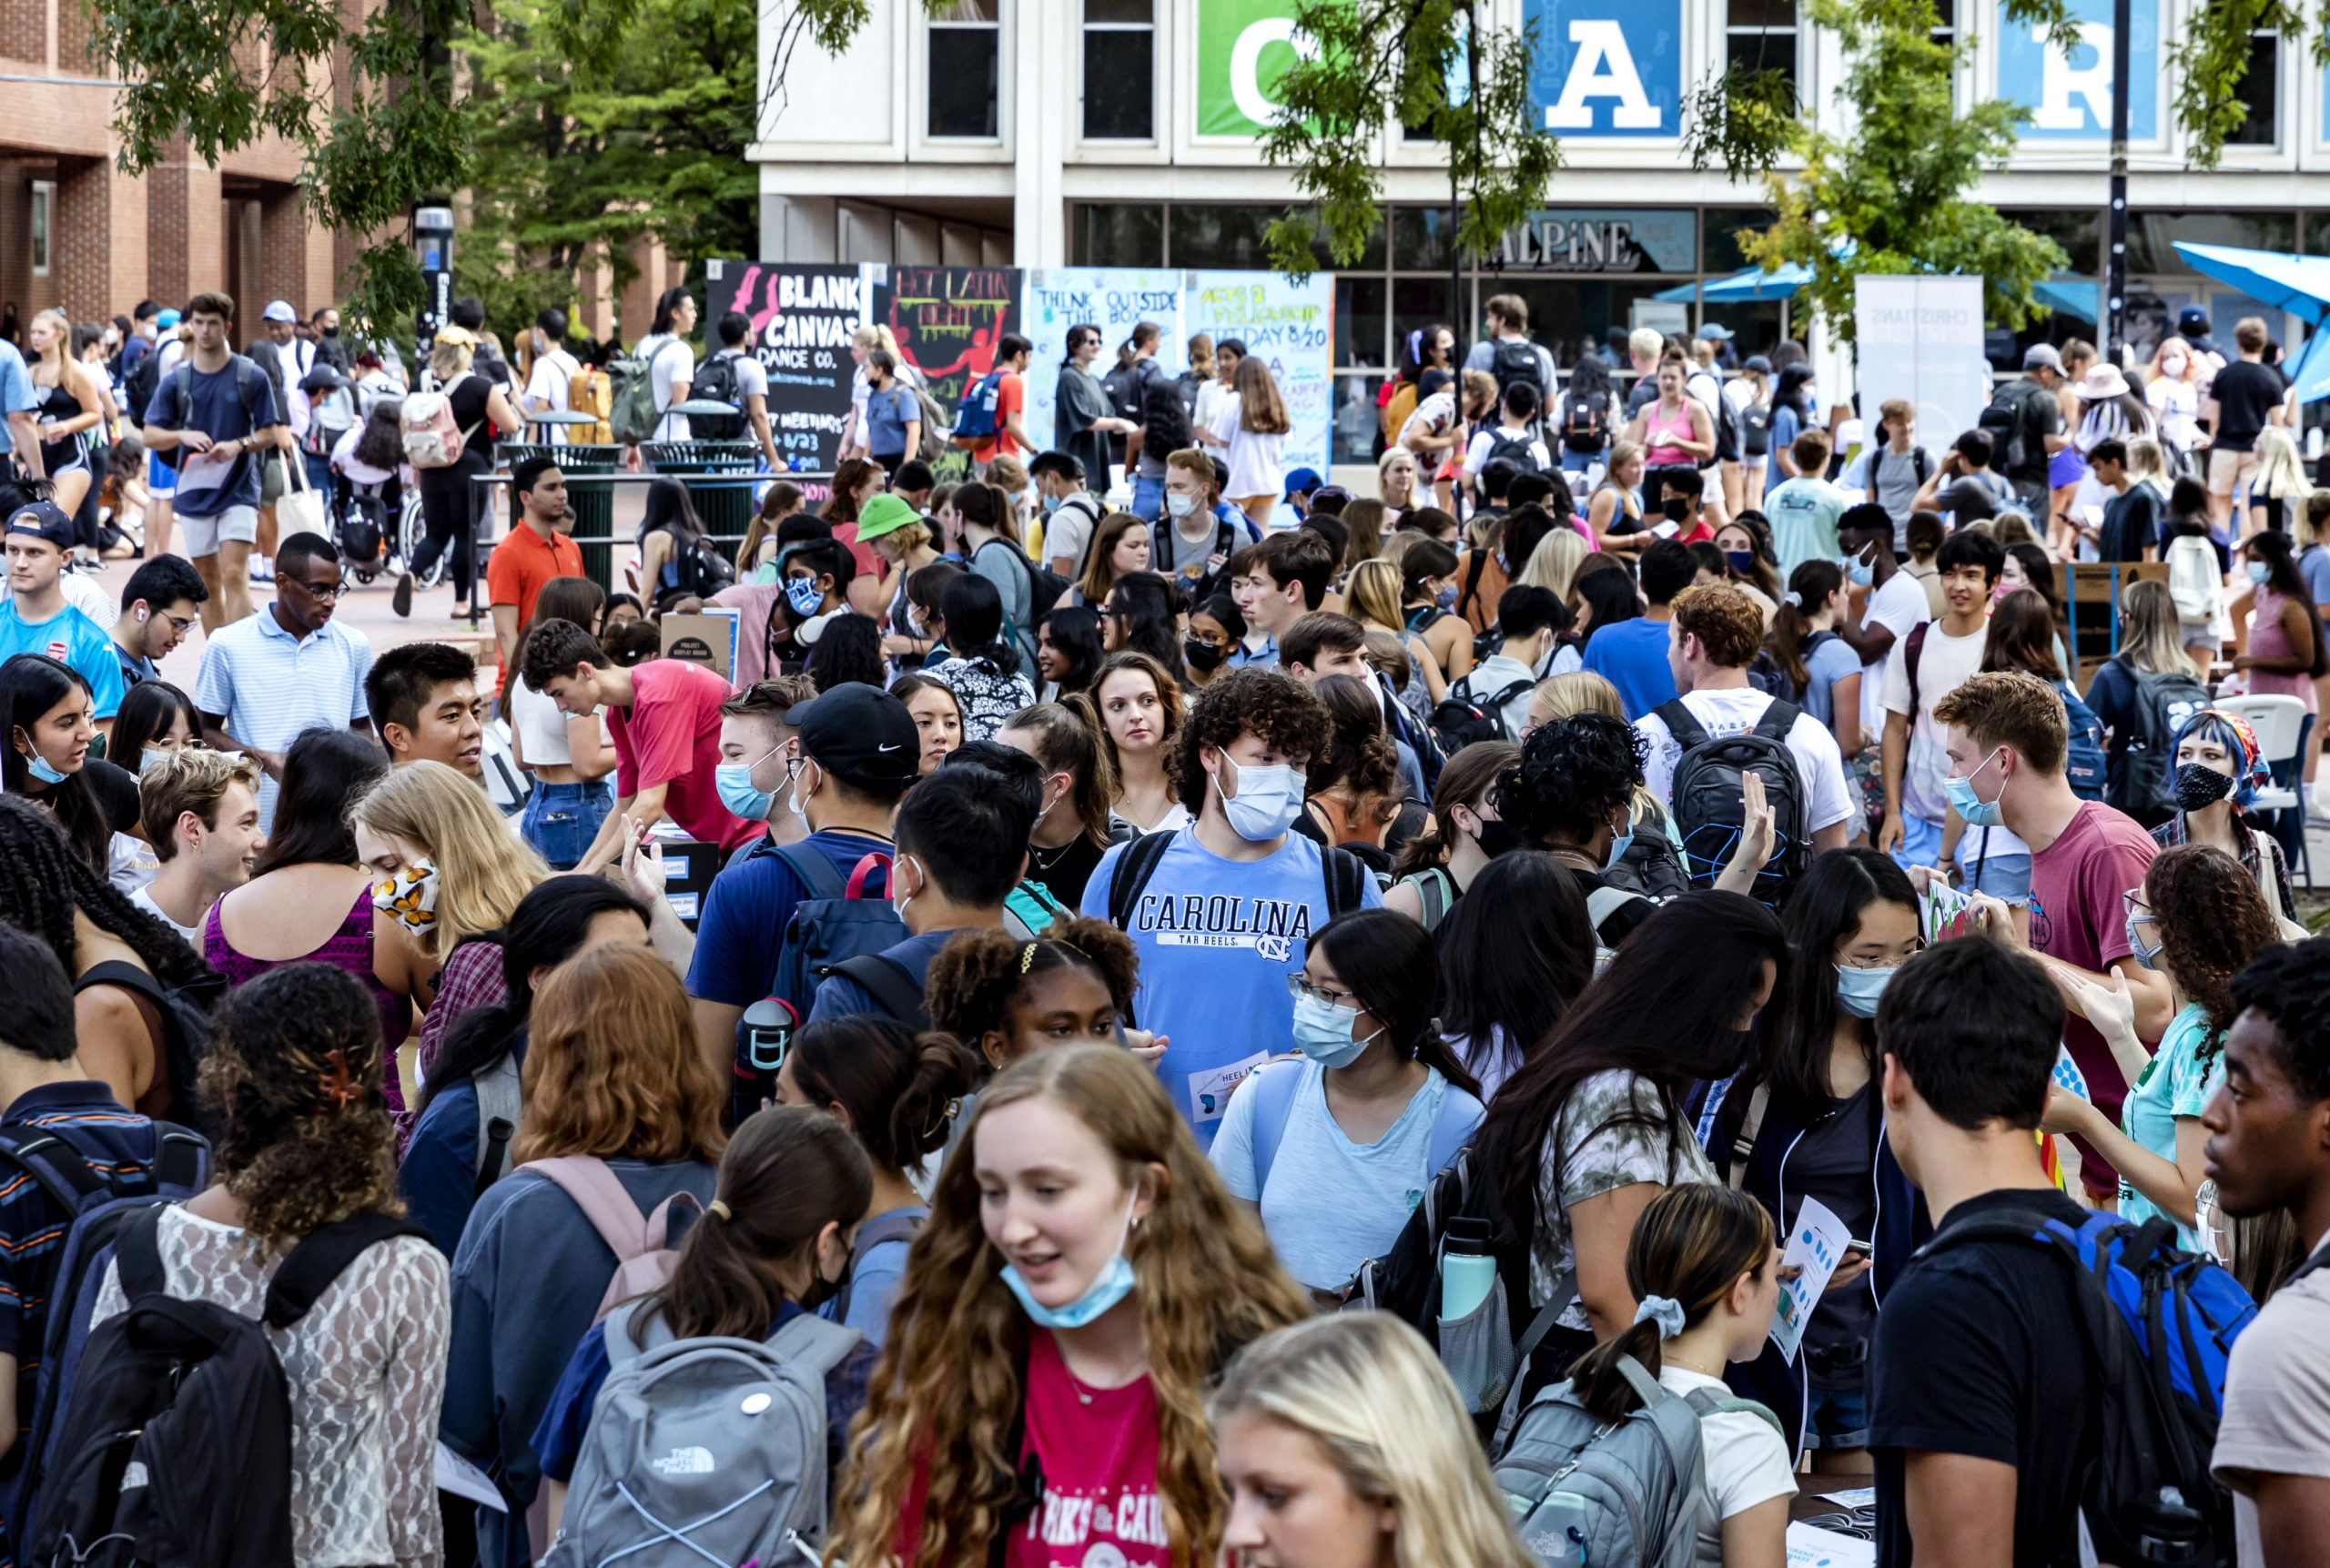 UNC campus scene. Students meet in front of the bookstore in large groups. Multiple are seen wearing masks.